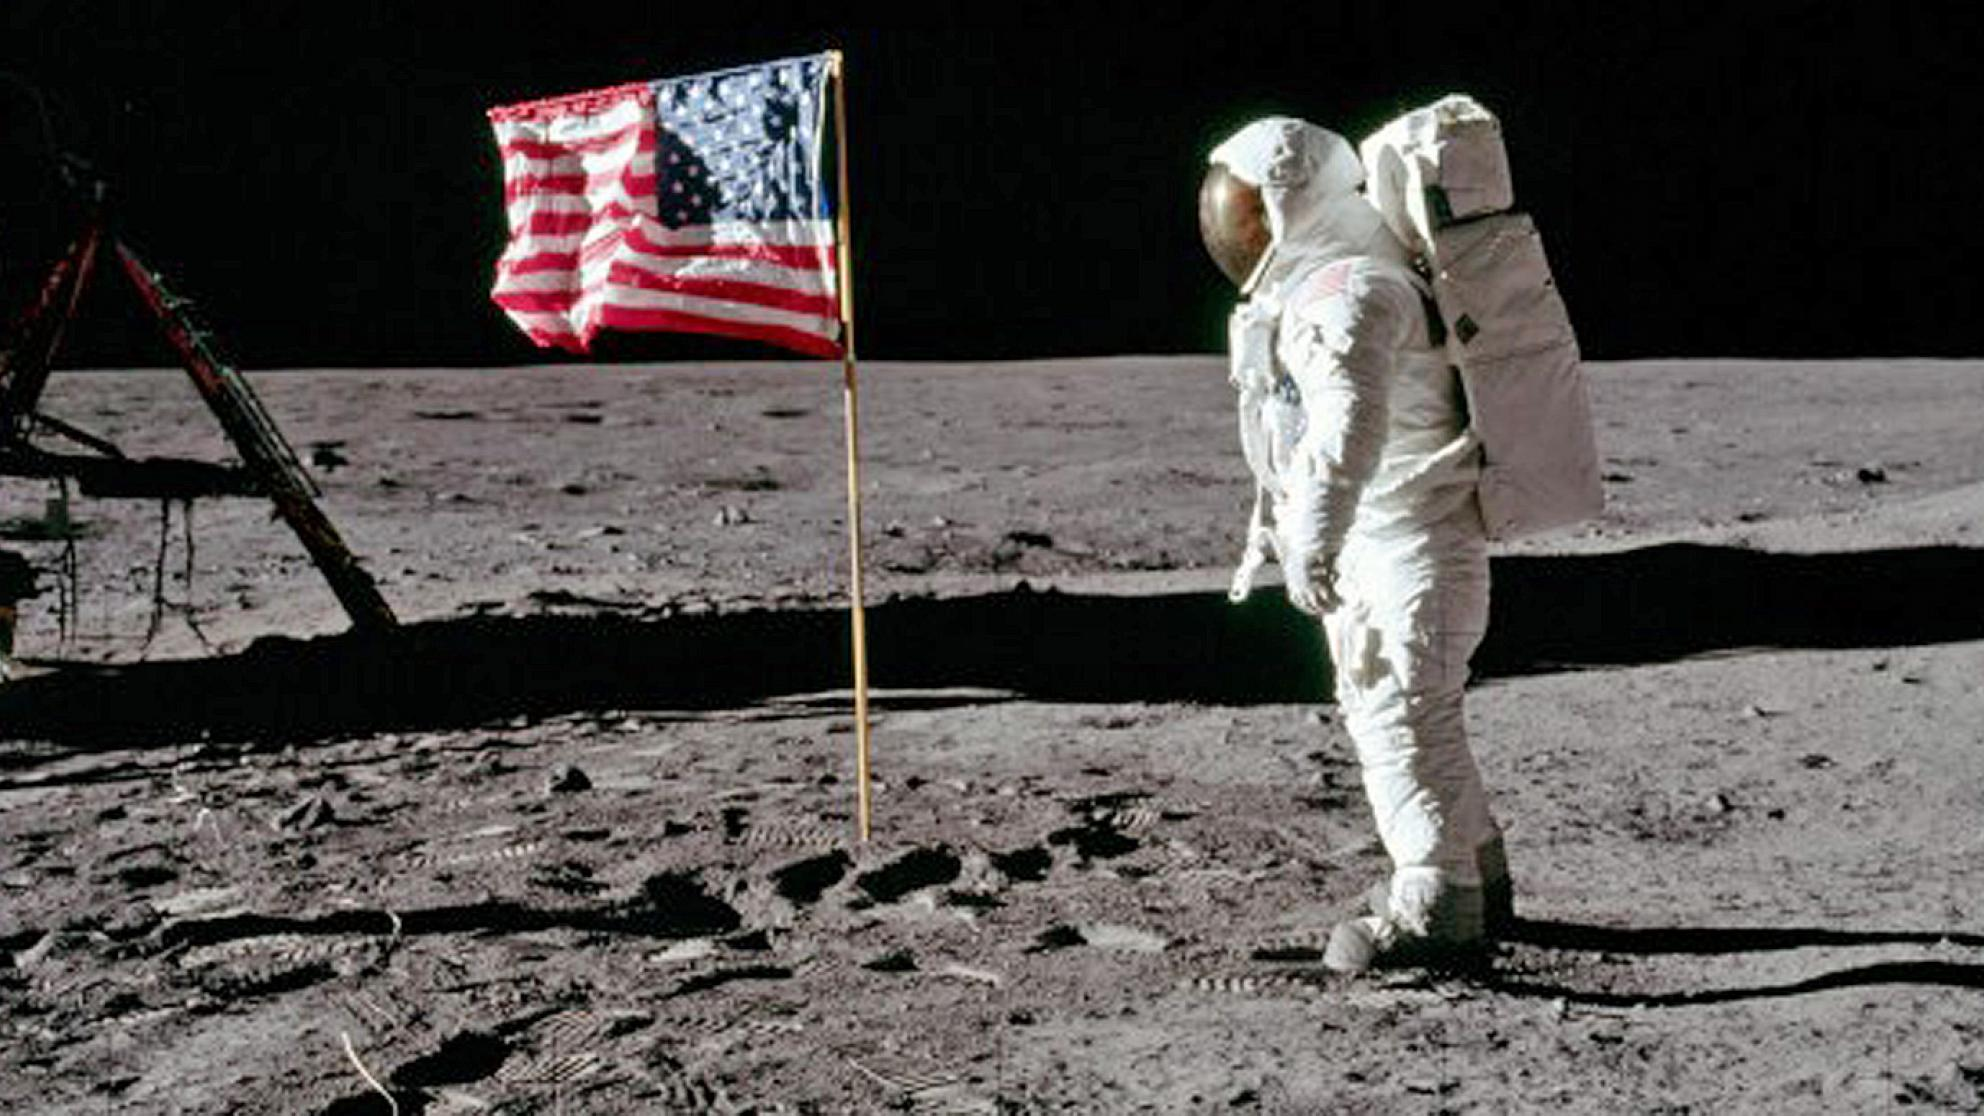 Astronaut on the moon standing near the American flag